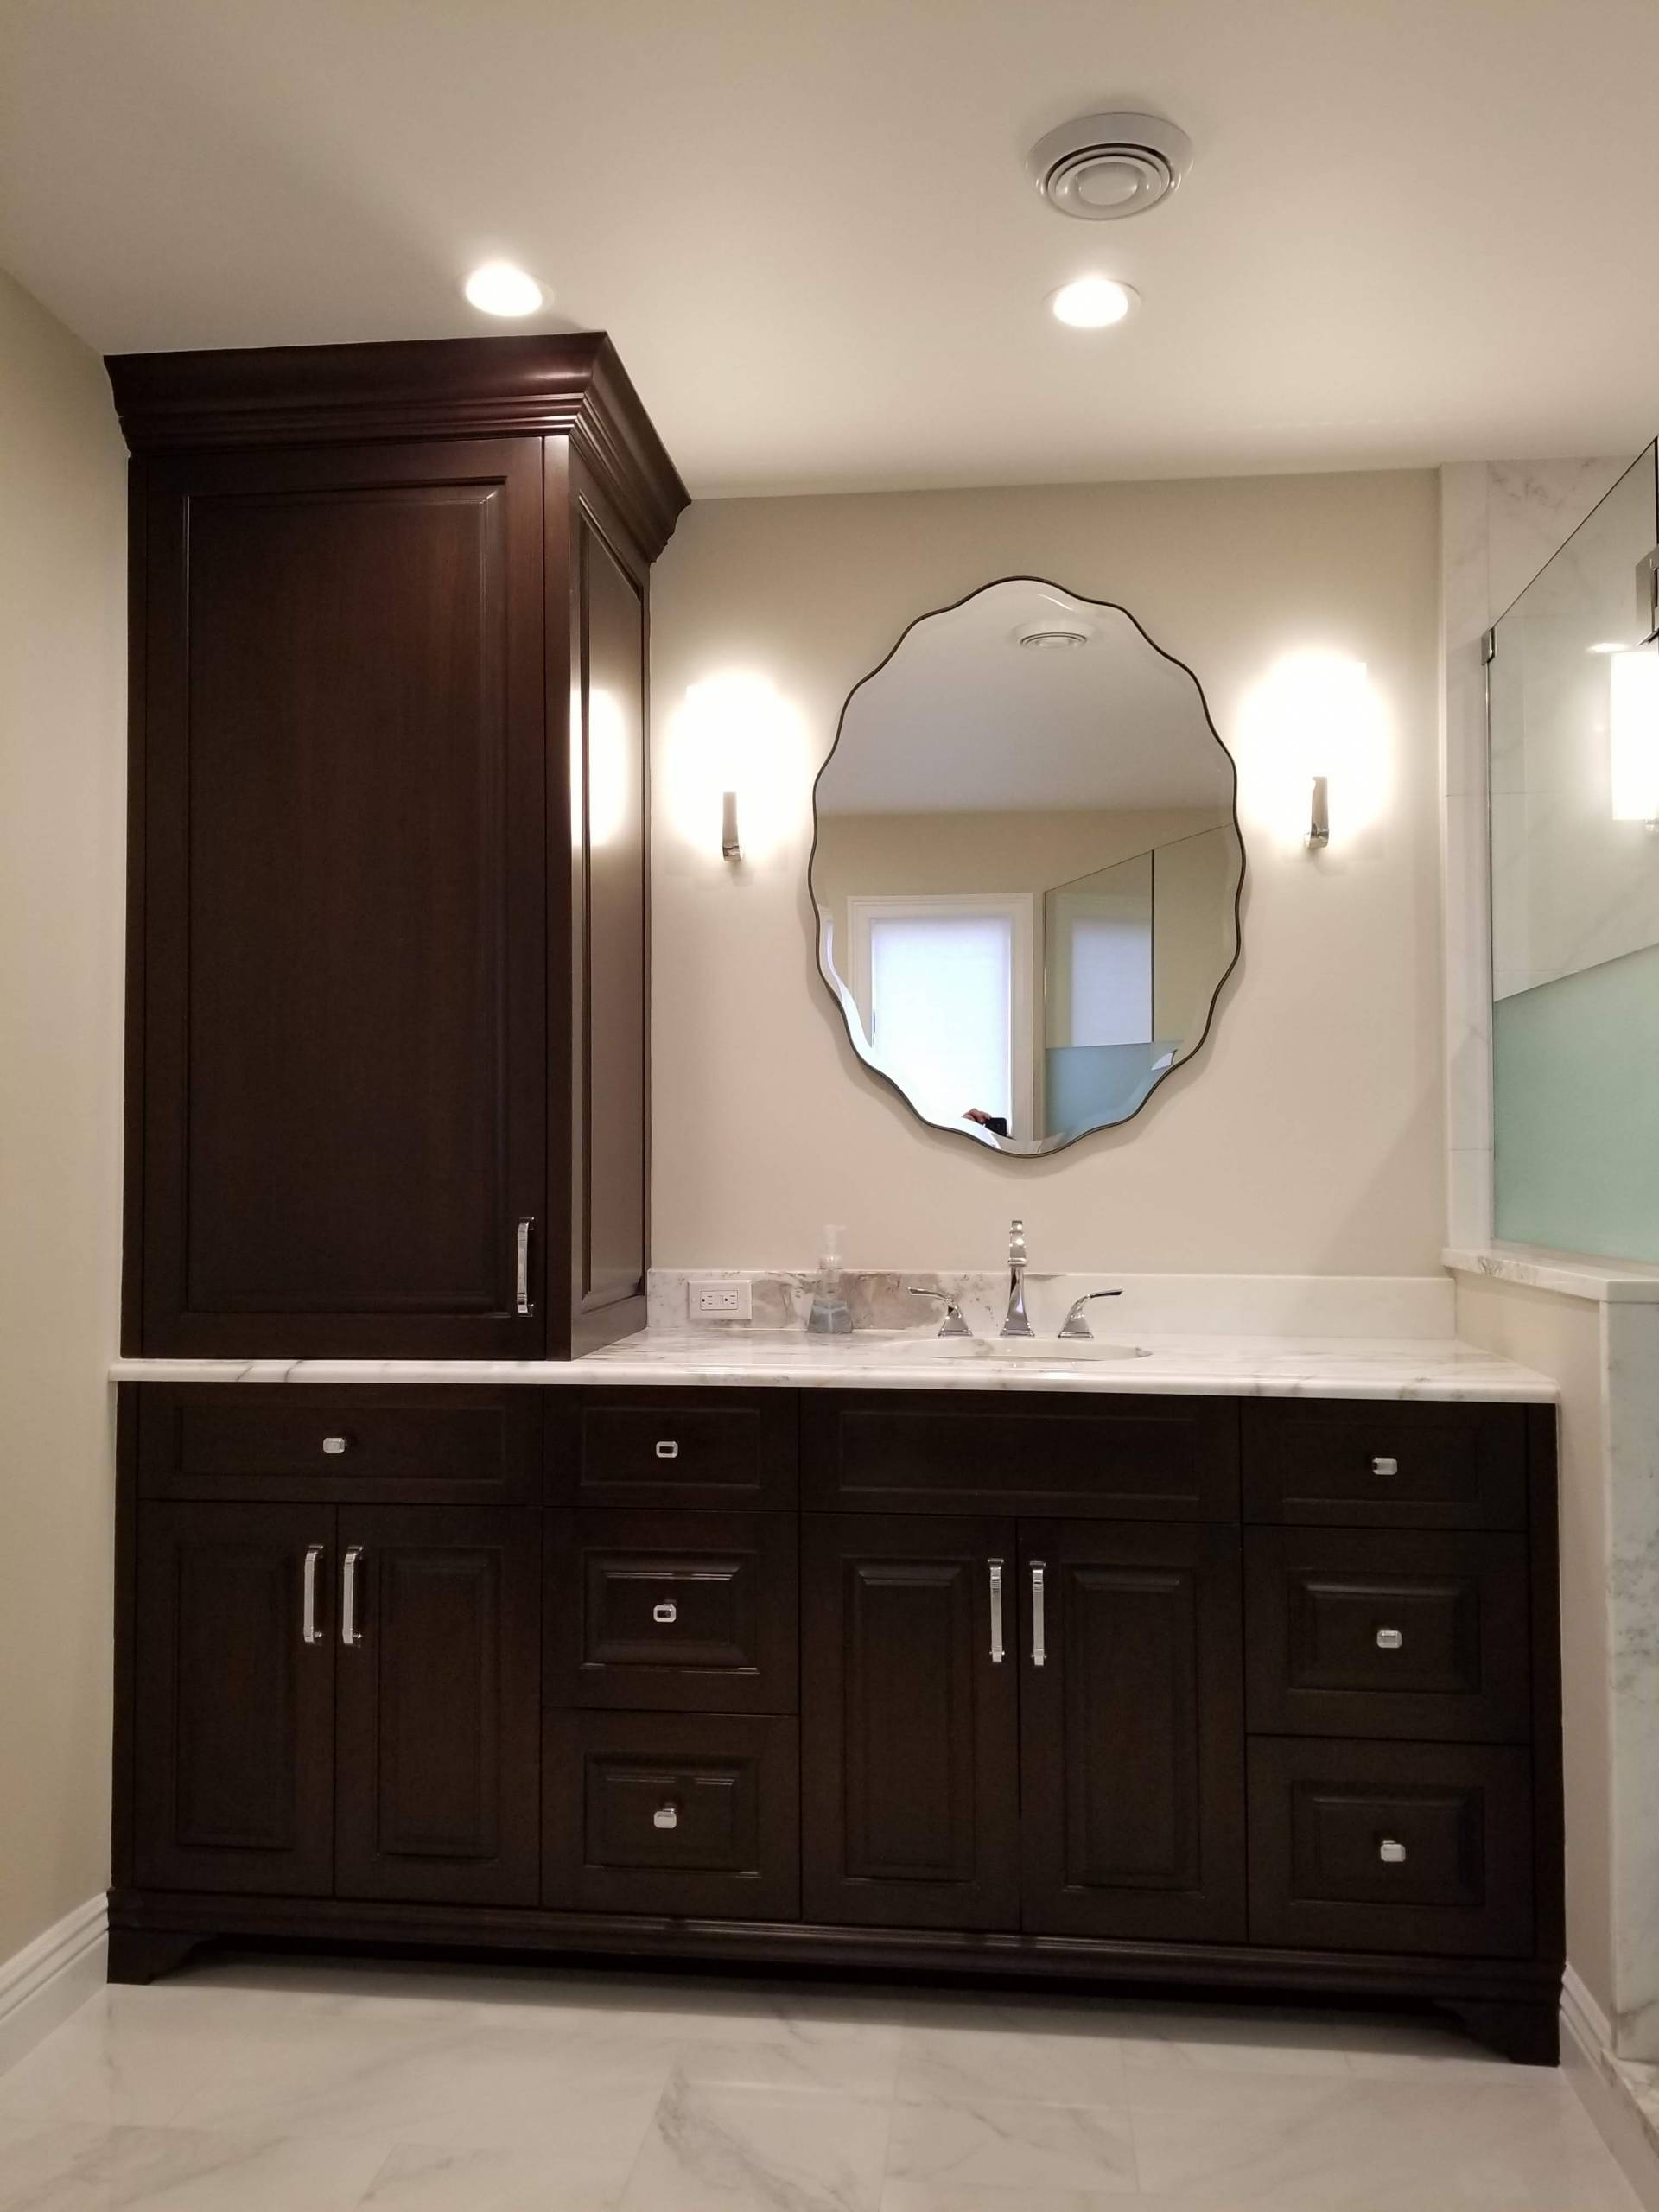 Custom Bathroom Cabinets Long Island, Bathroom Cabinetry ...